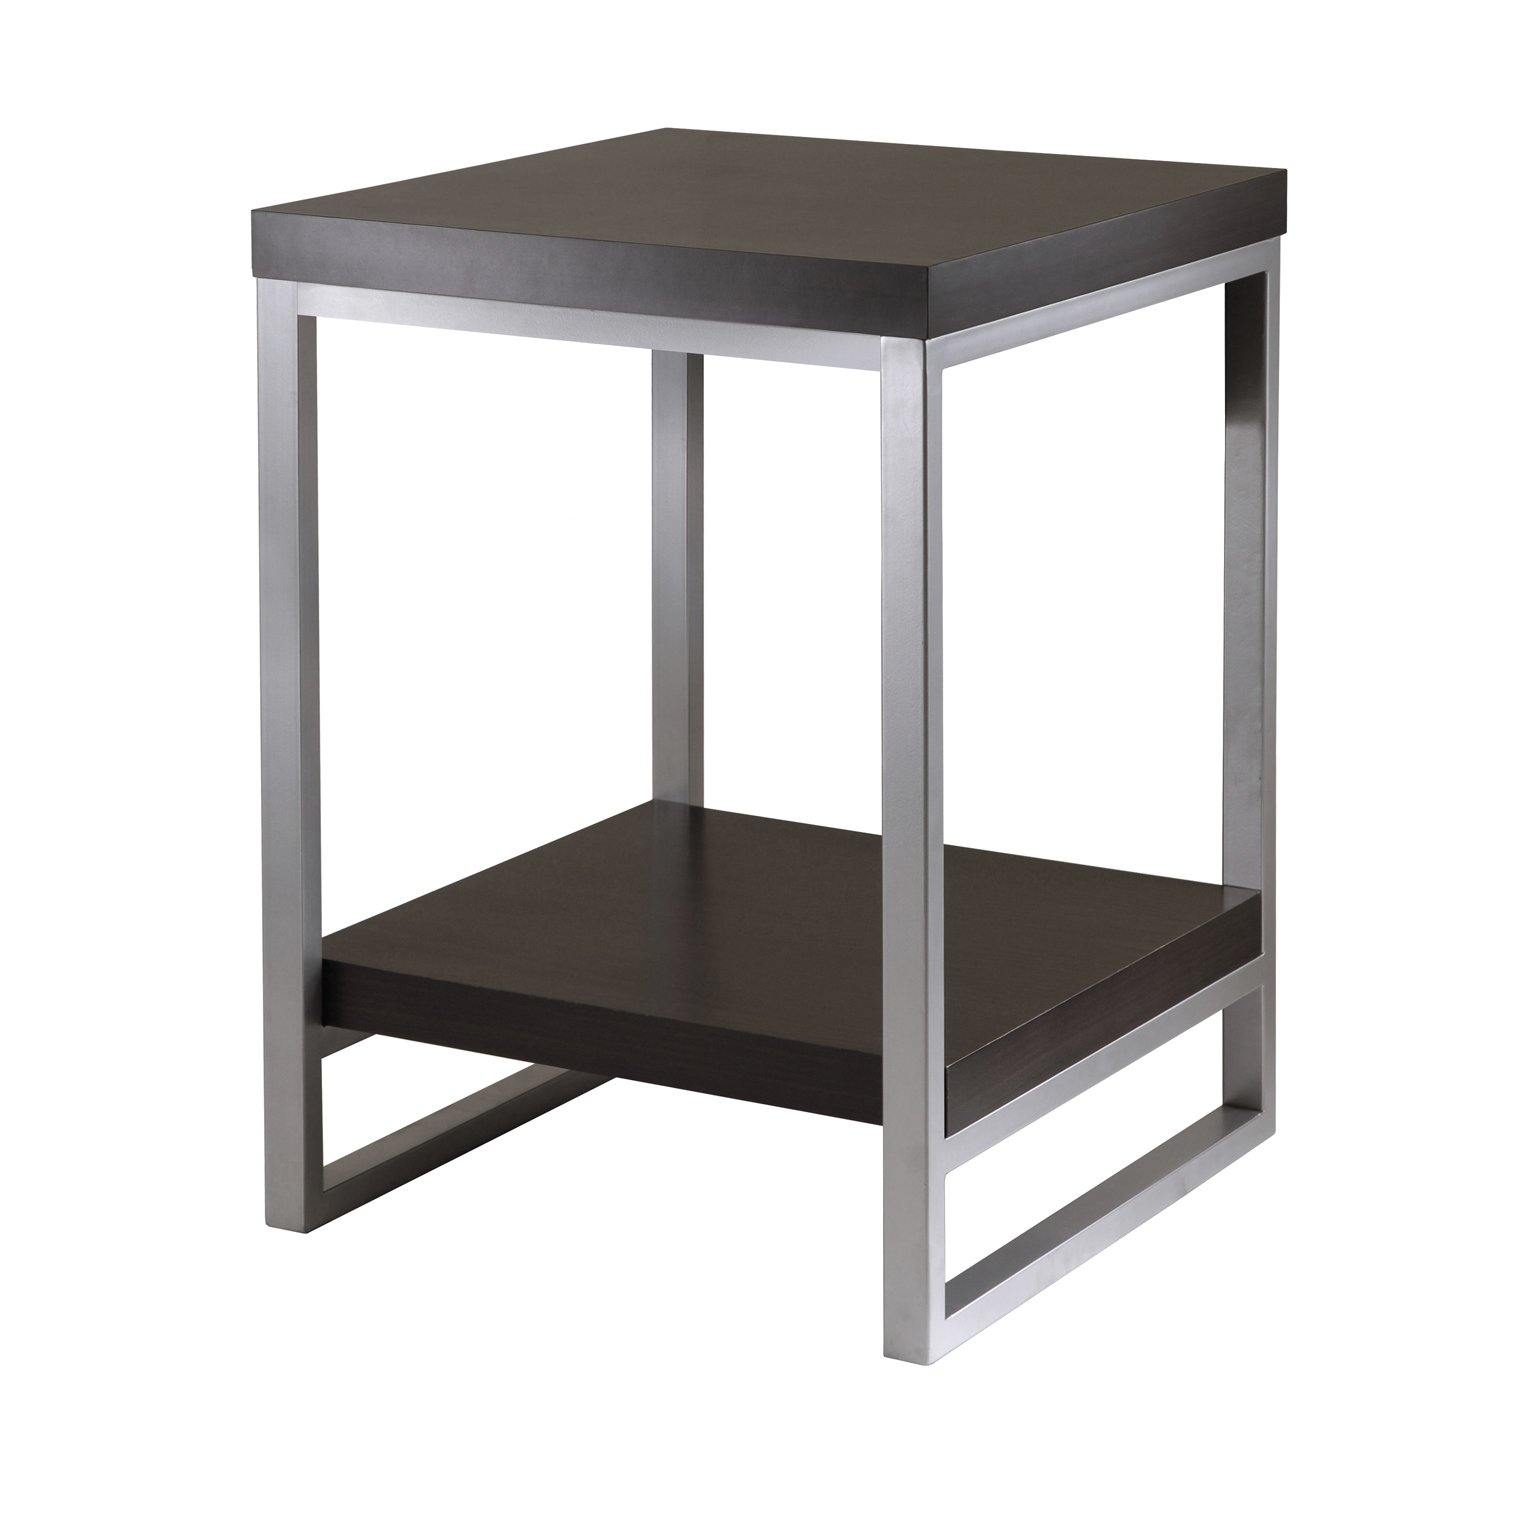 Jared End Table, Enamel Steel Tube - My USA Furniture